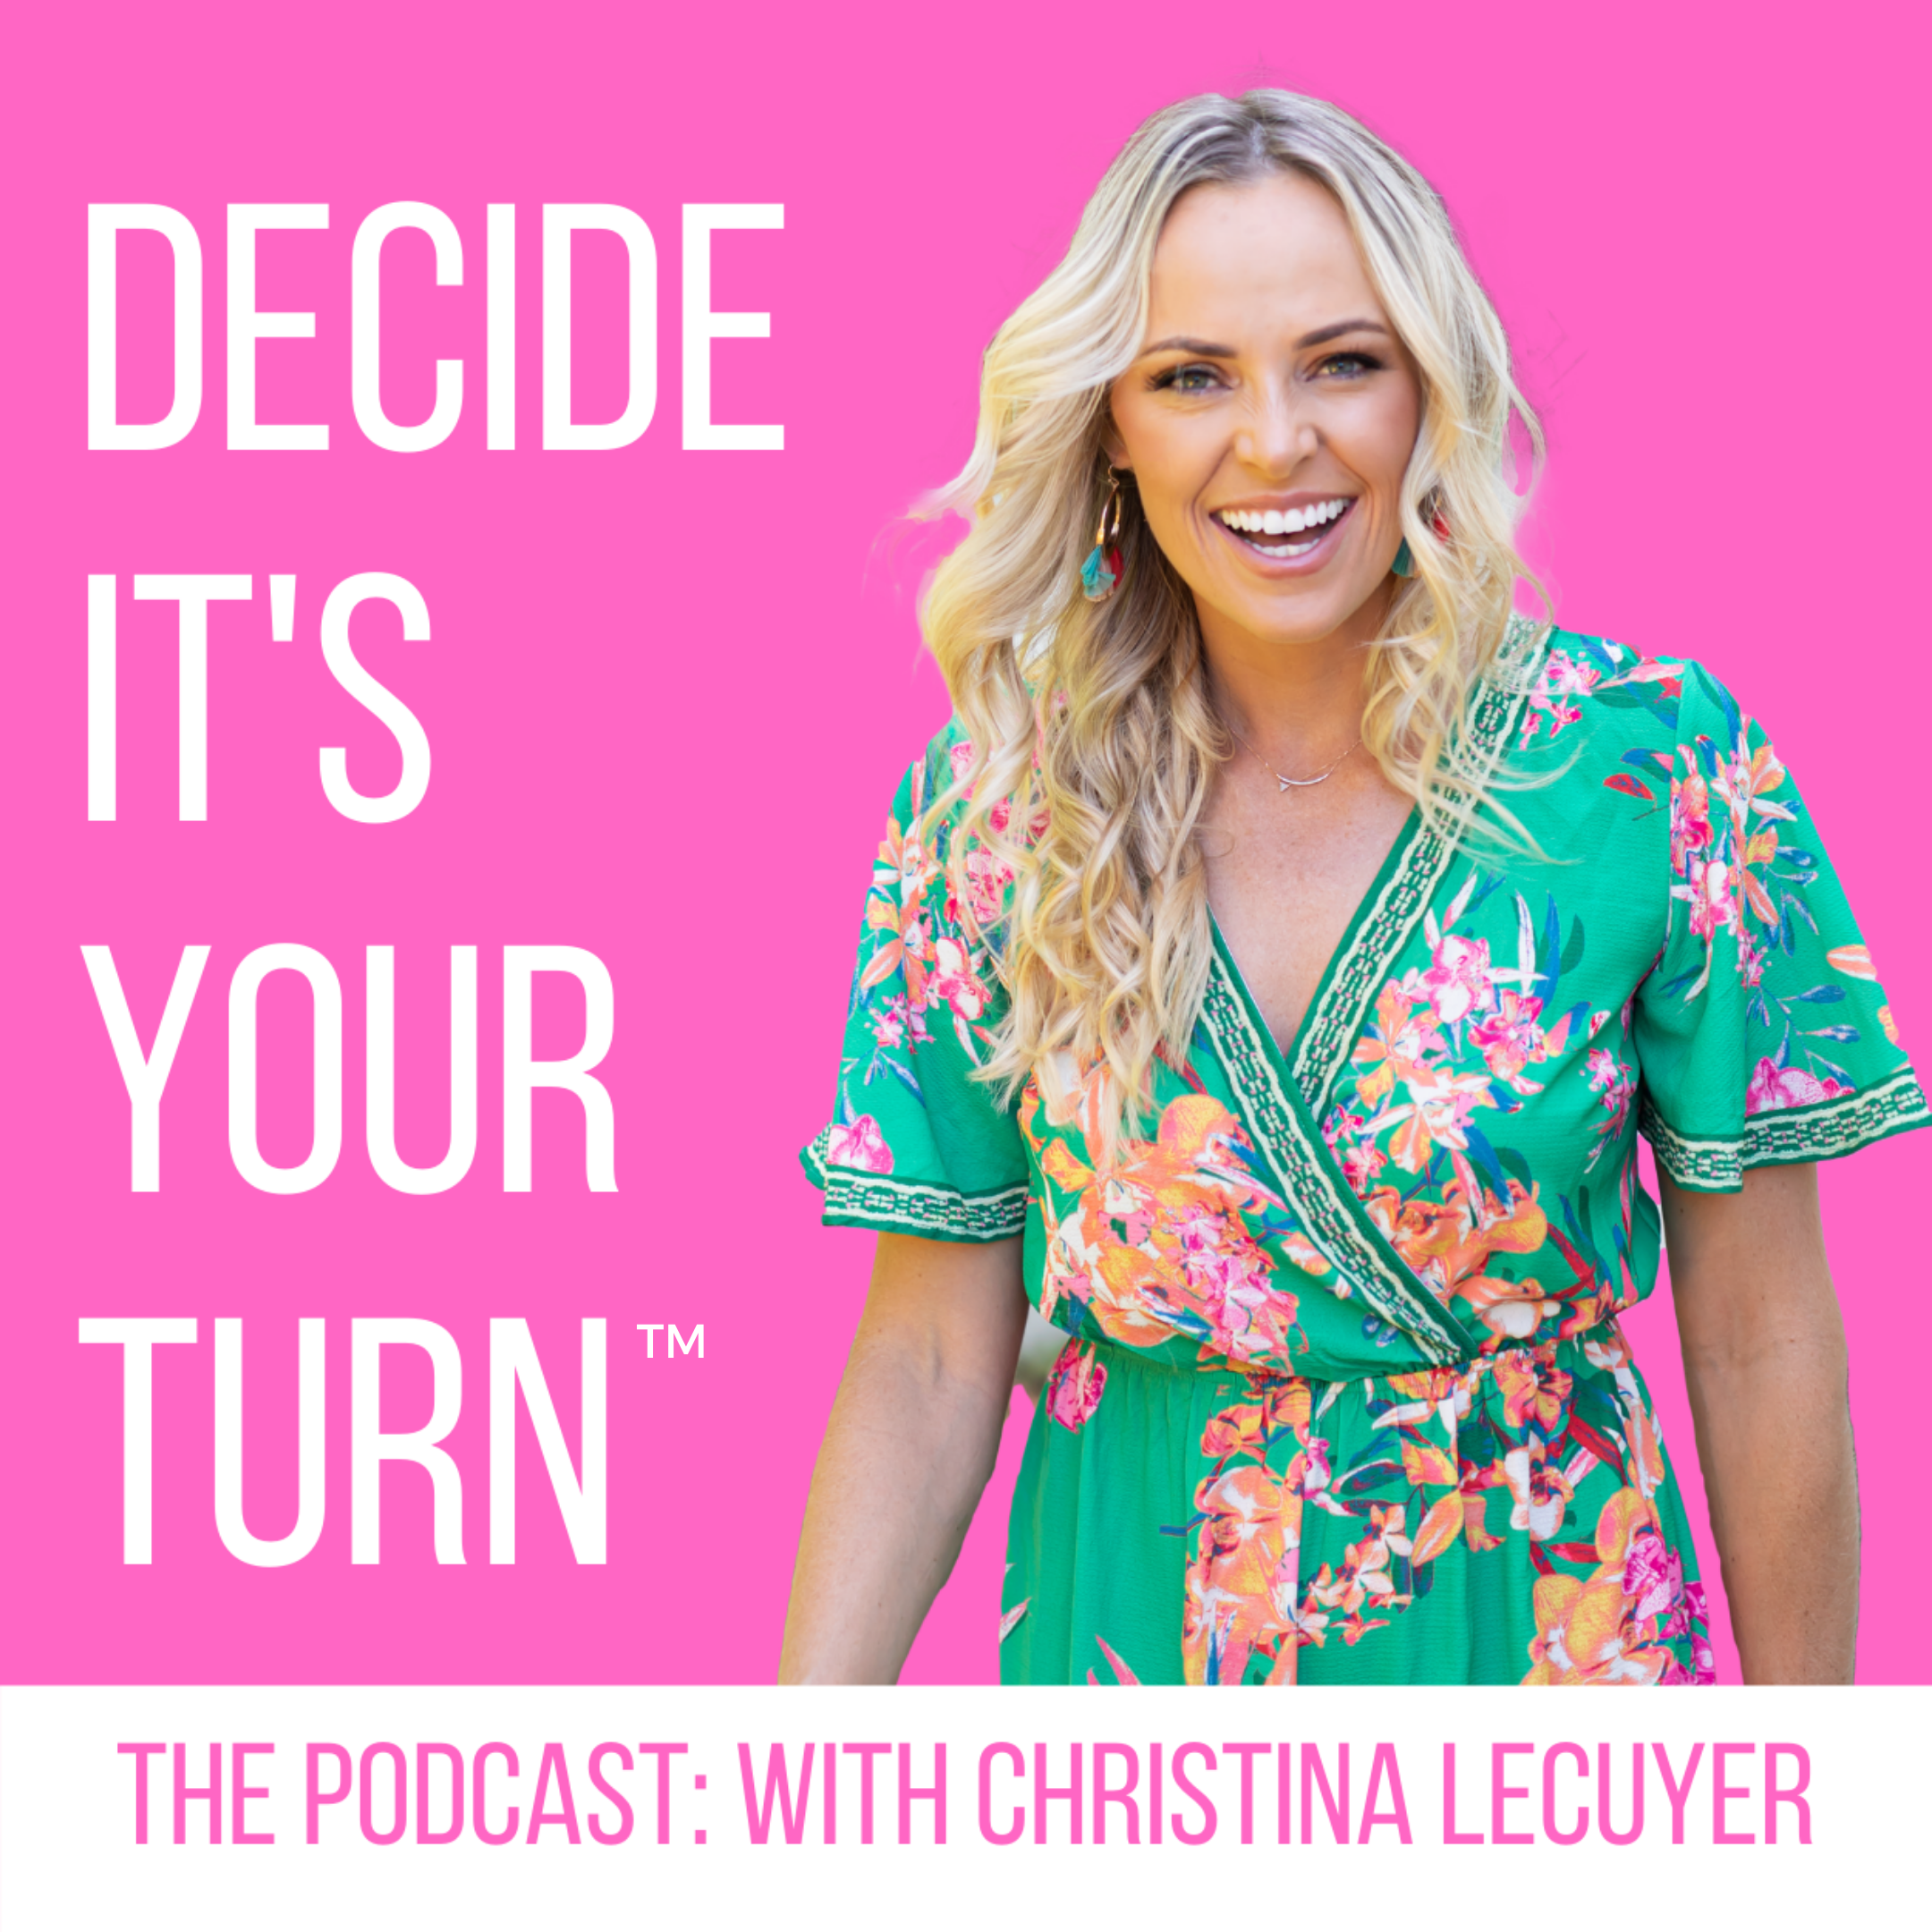 Decide It's Your Turn™: The Podcast